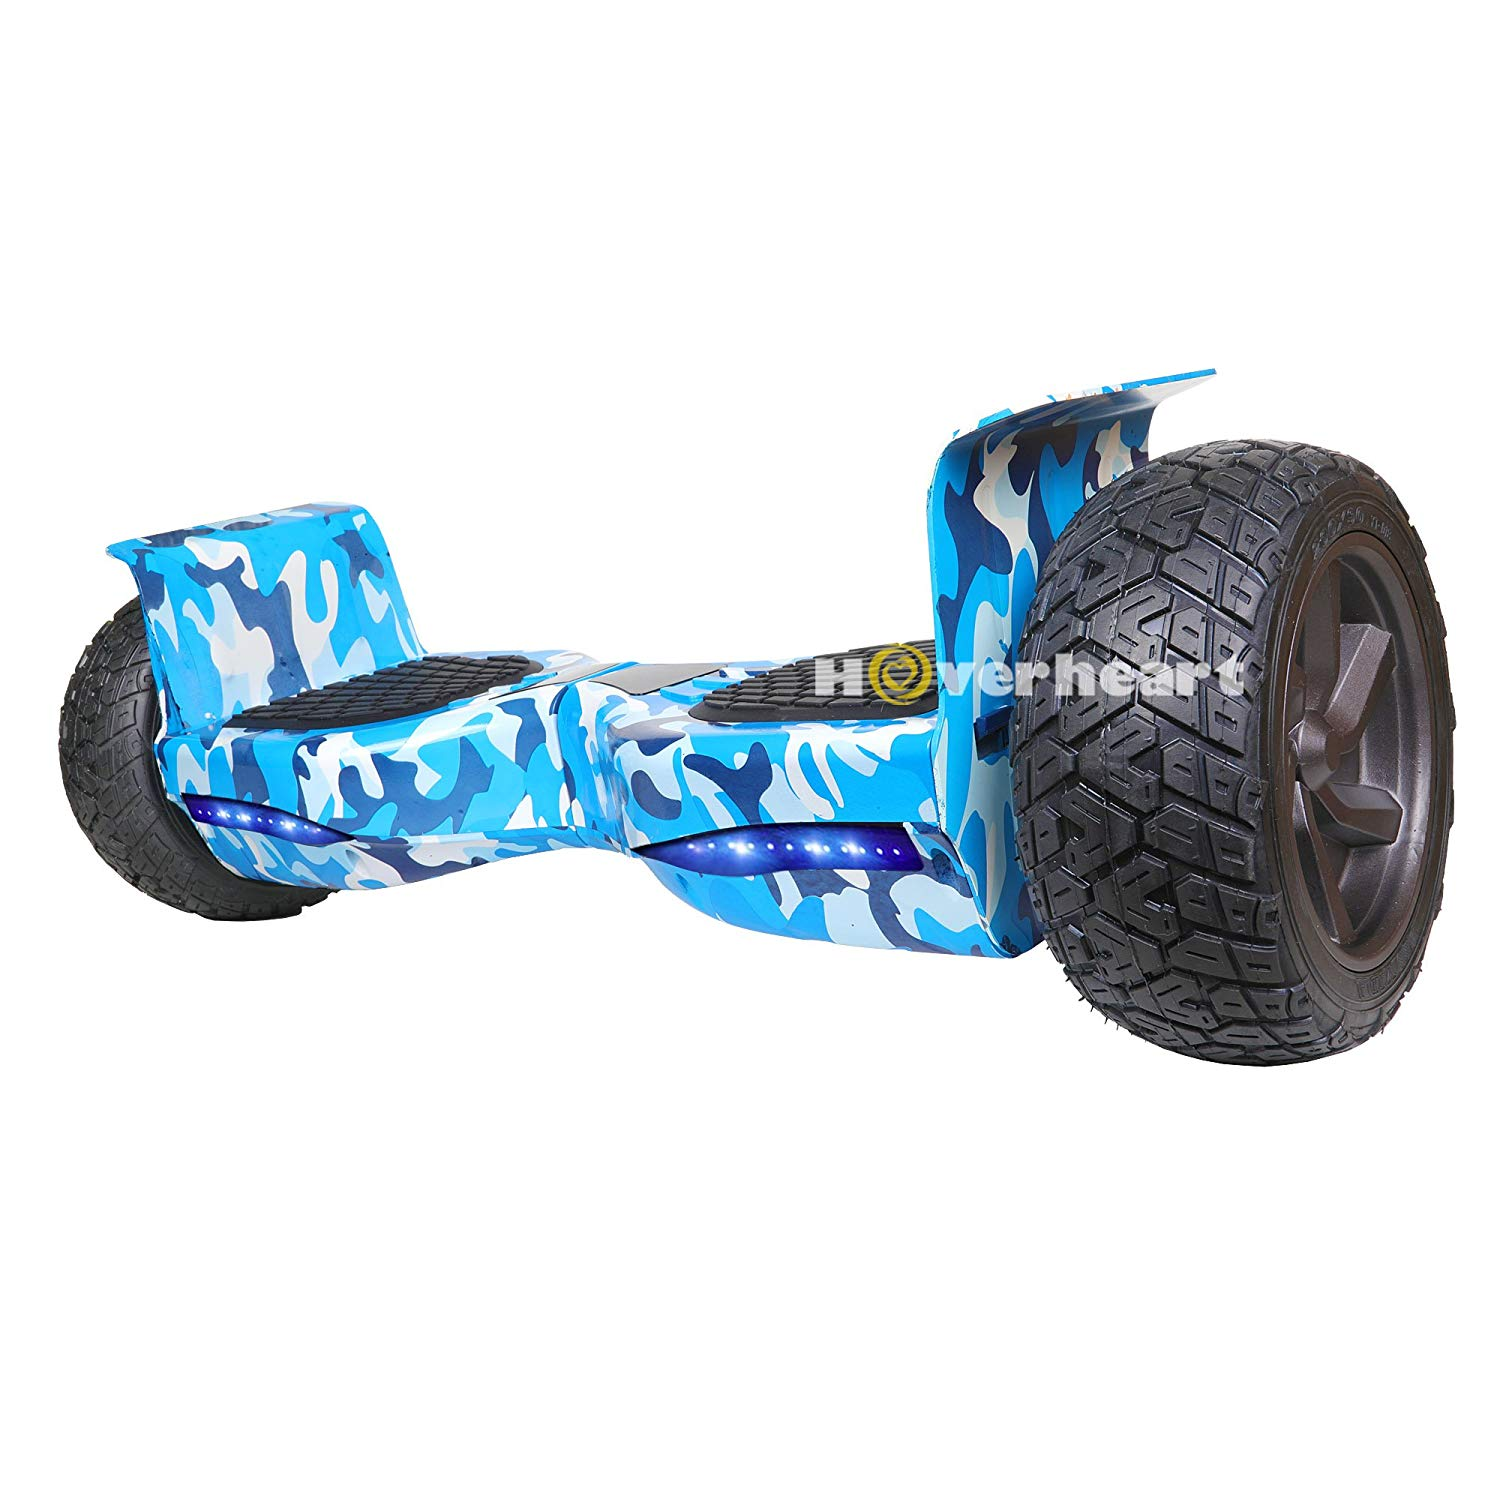 "HOVERHEART Hoverboard 8.5"" Two-Wheel Metal Self Balancing All-Terrain Alloy Wheel Electric Scooter UL 2272 Certified"